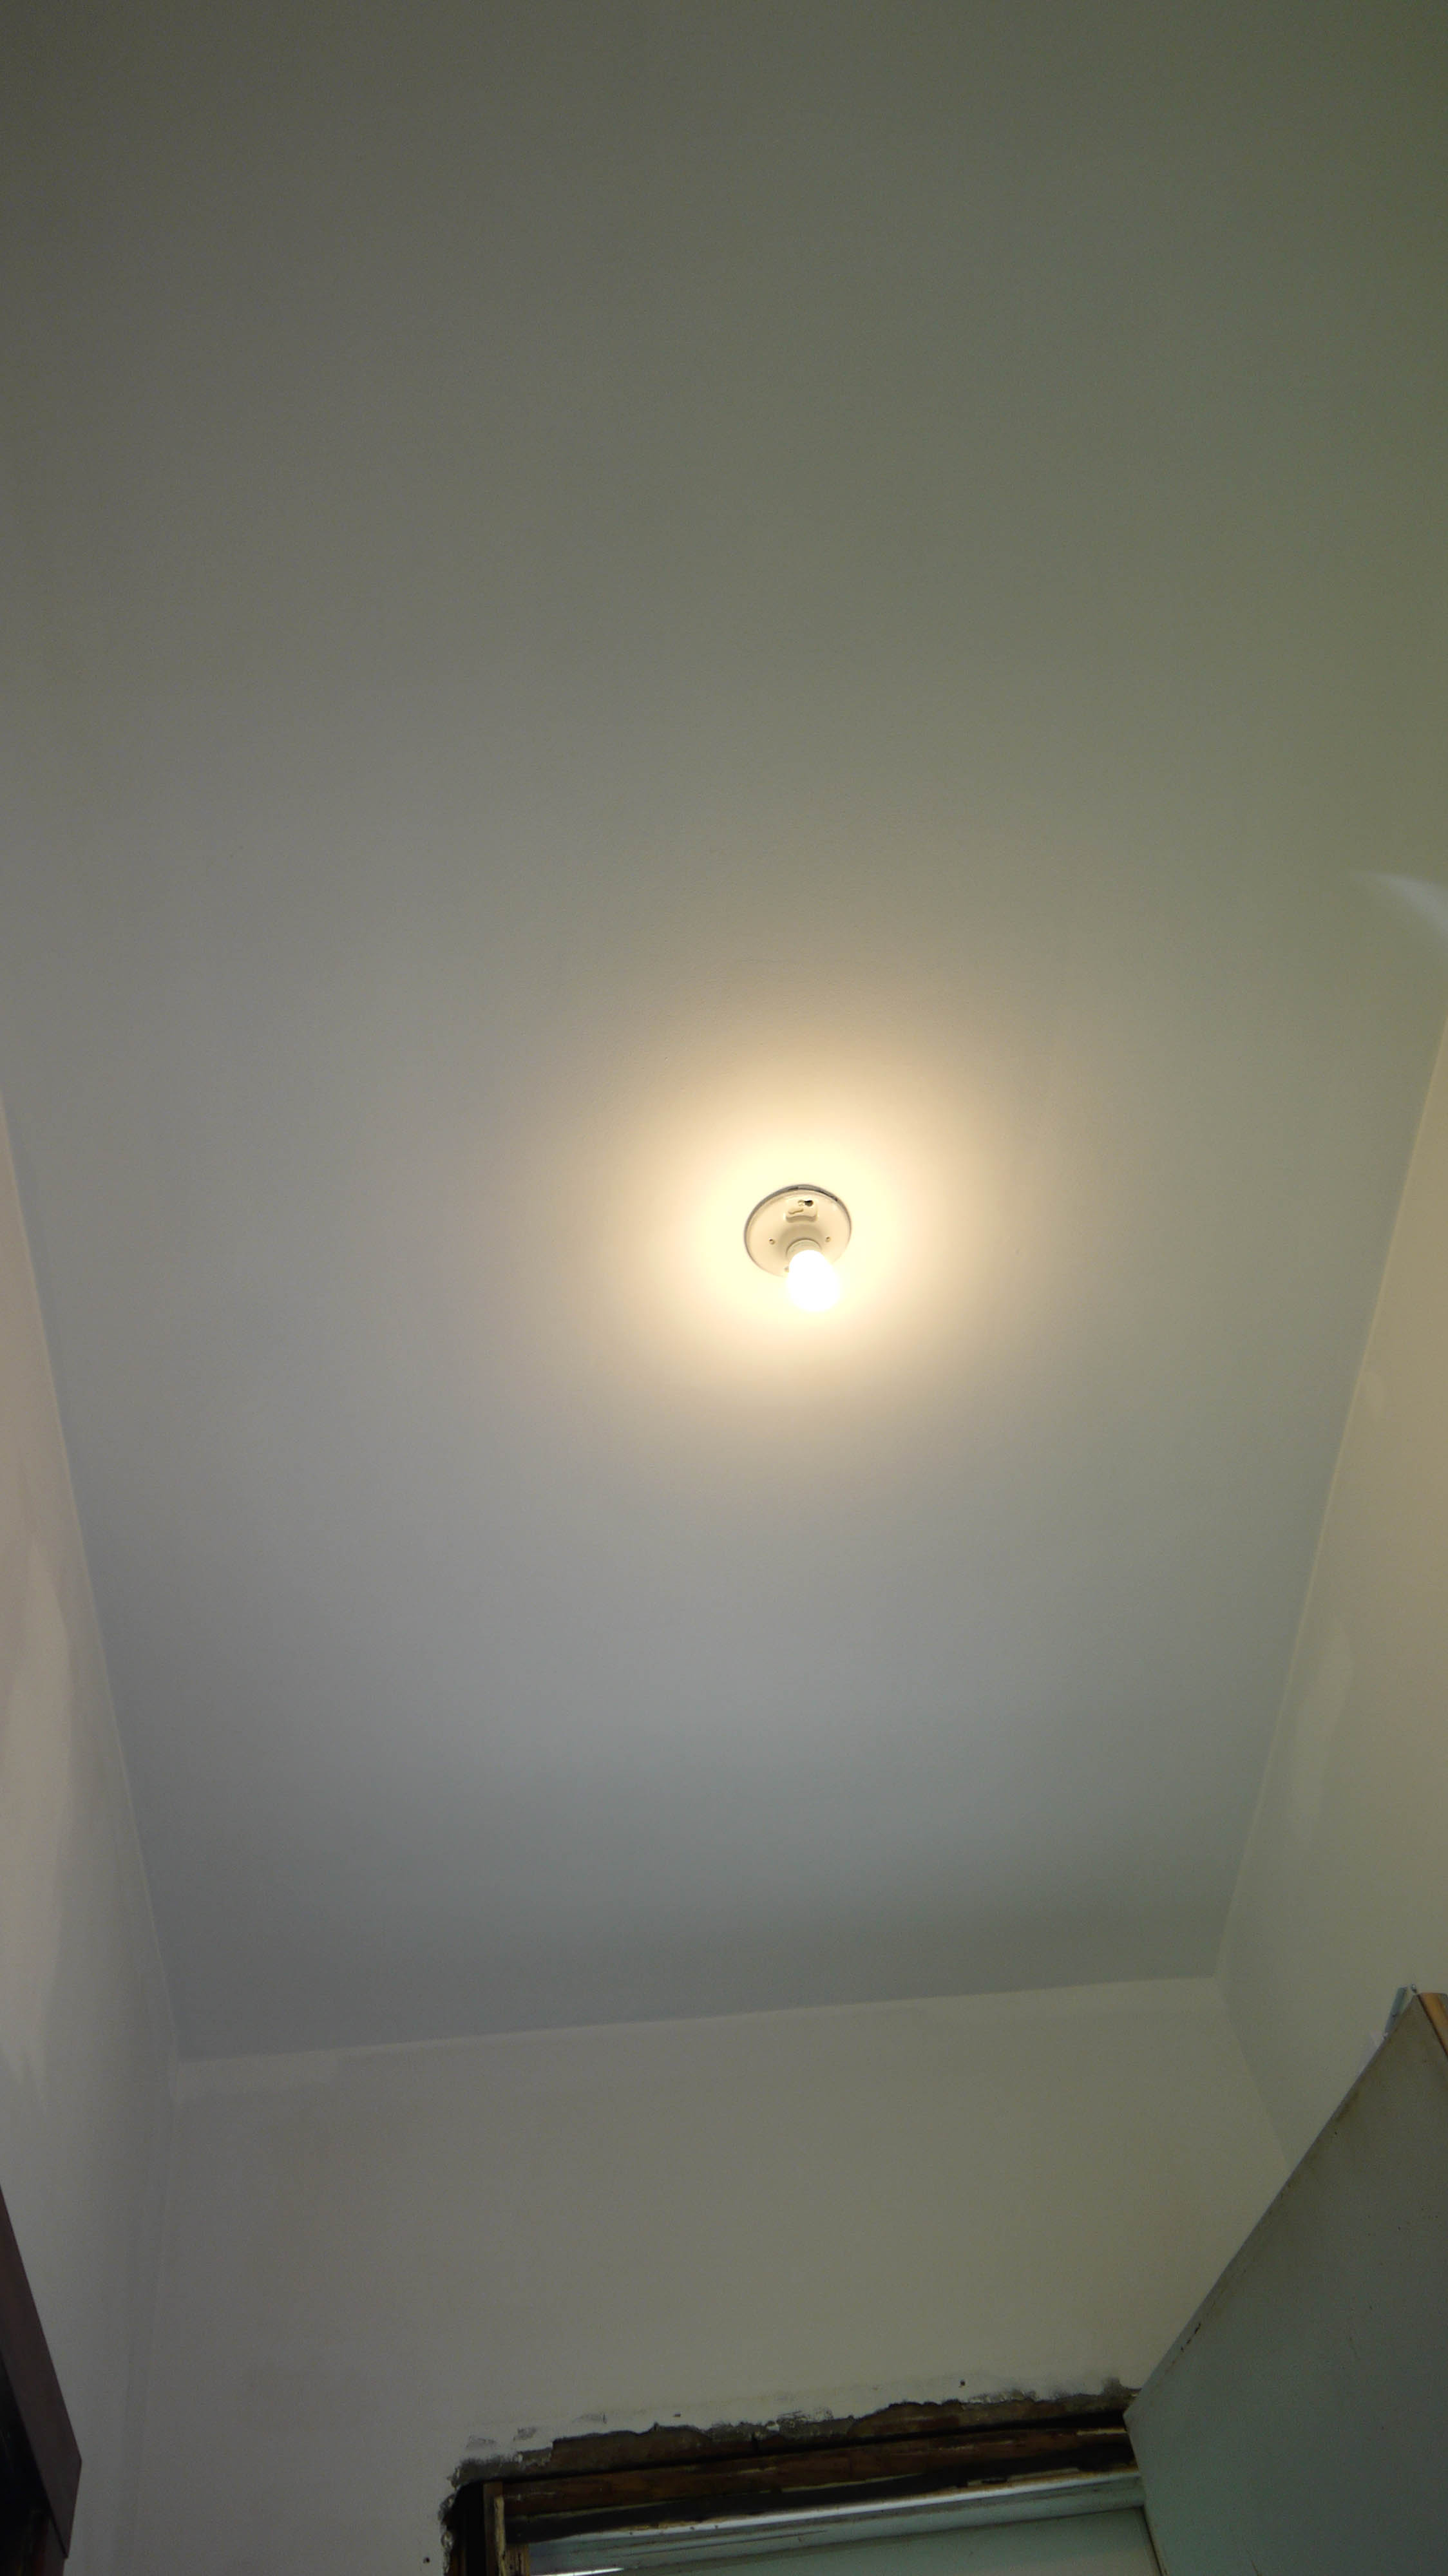 Lighting up and adam ries i stained the woodwork first before painting the walls it is impossible in my opinion to stain woodwork and not get it on the walls aloadofball Choice Image